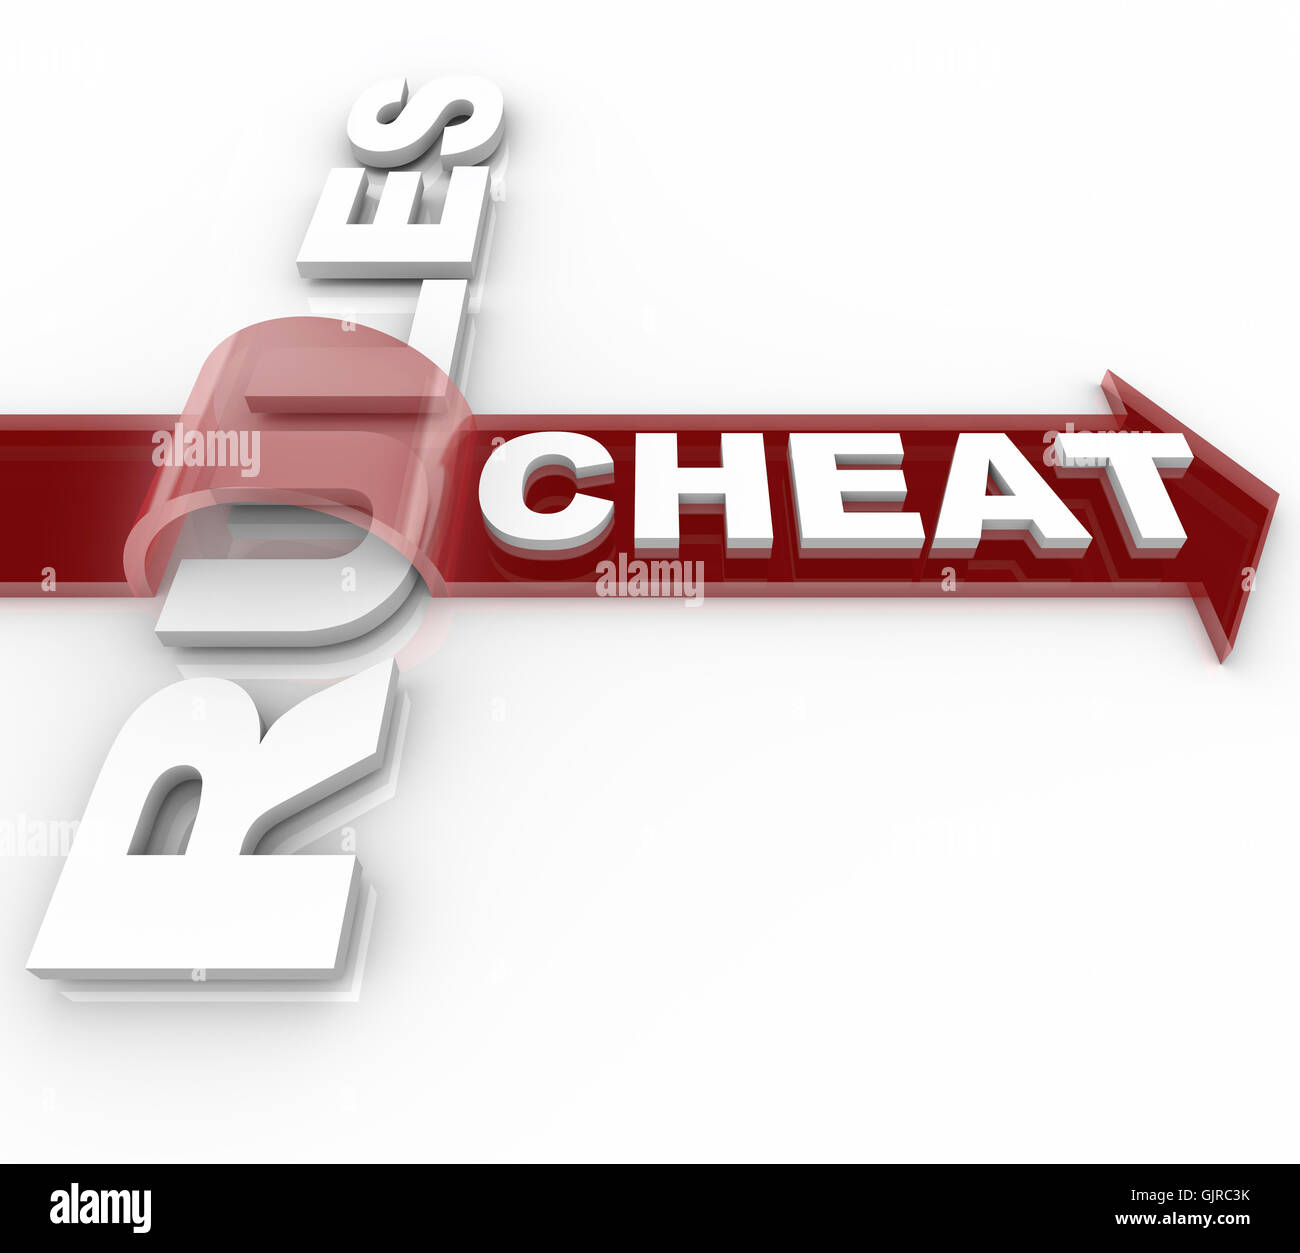 Cheating and Jumping Over the Rules - Word on Arrow - Stock Image